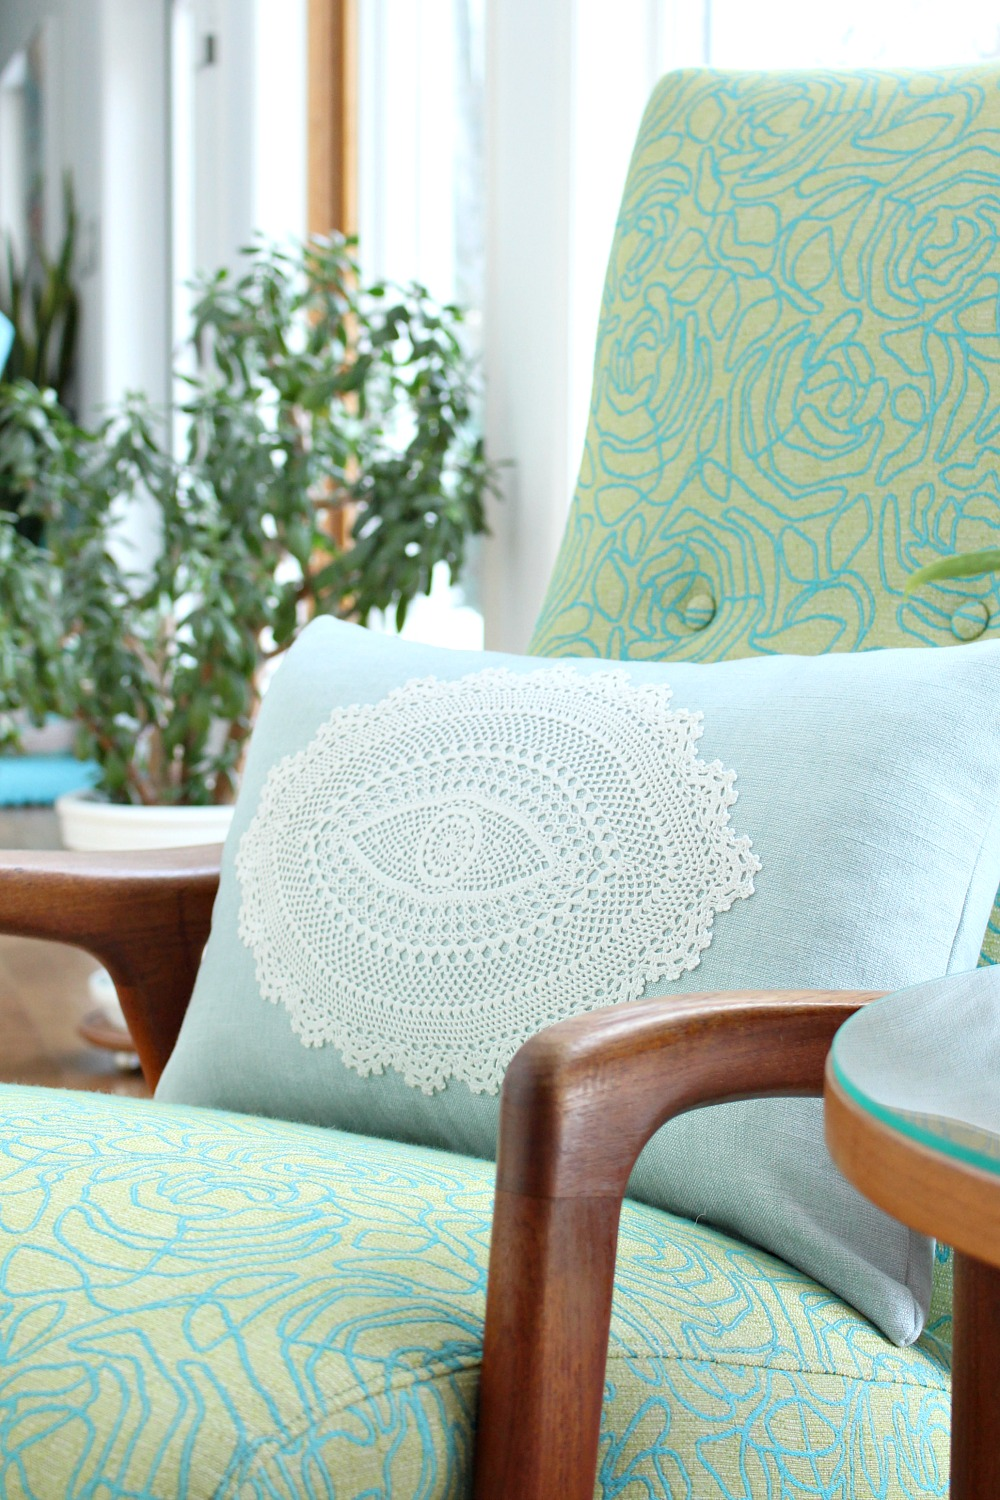 DIY Doily Pillow | 15 Beautiful Handmade Mother's Day Gift Ideas